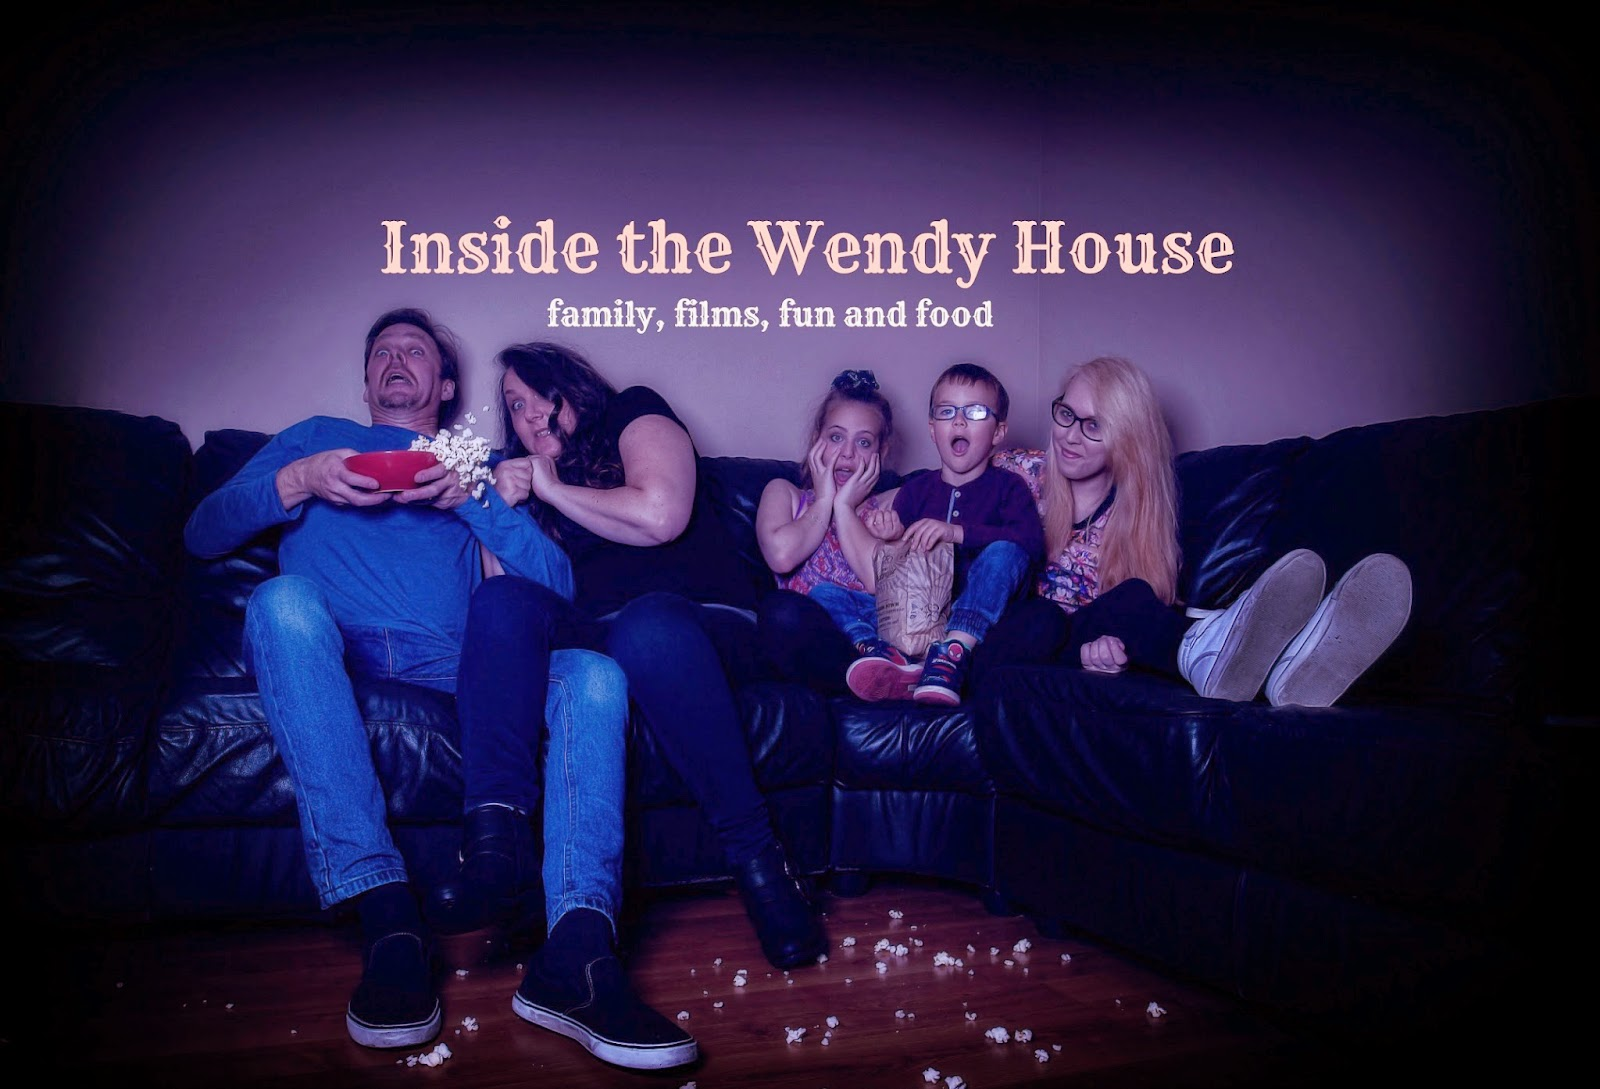 Inside the Wendy House blog